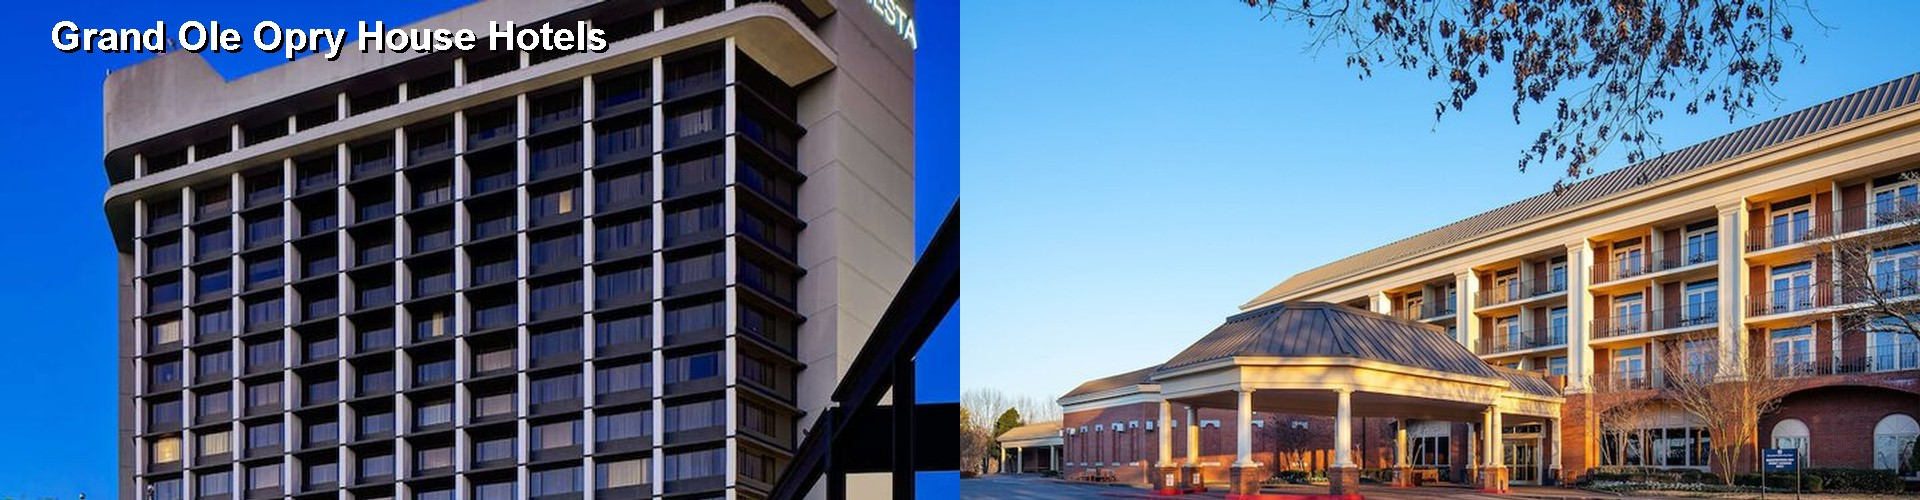 5 Best Hotels near Grand Ole Opry House